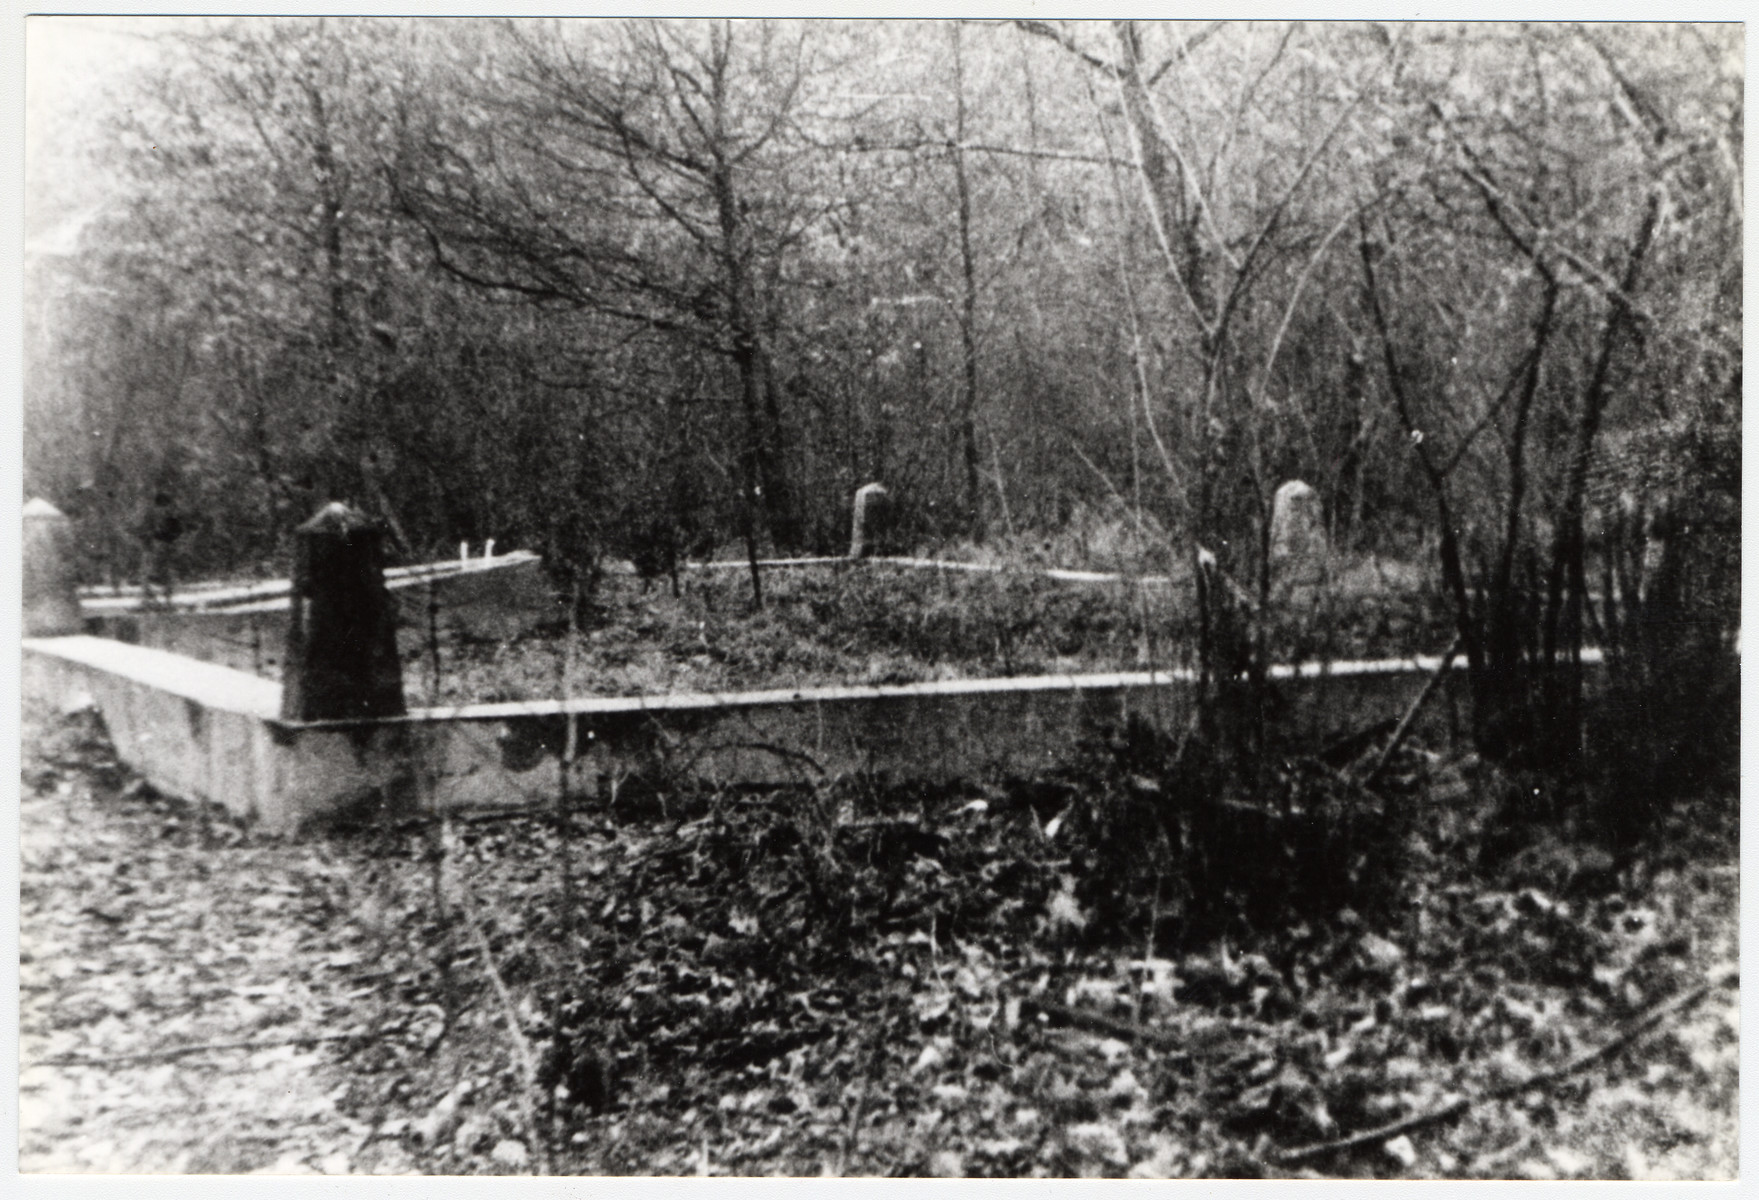 View of the execution site where Jews from Bolechow were murdered and buried during an Aktion in 1941.